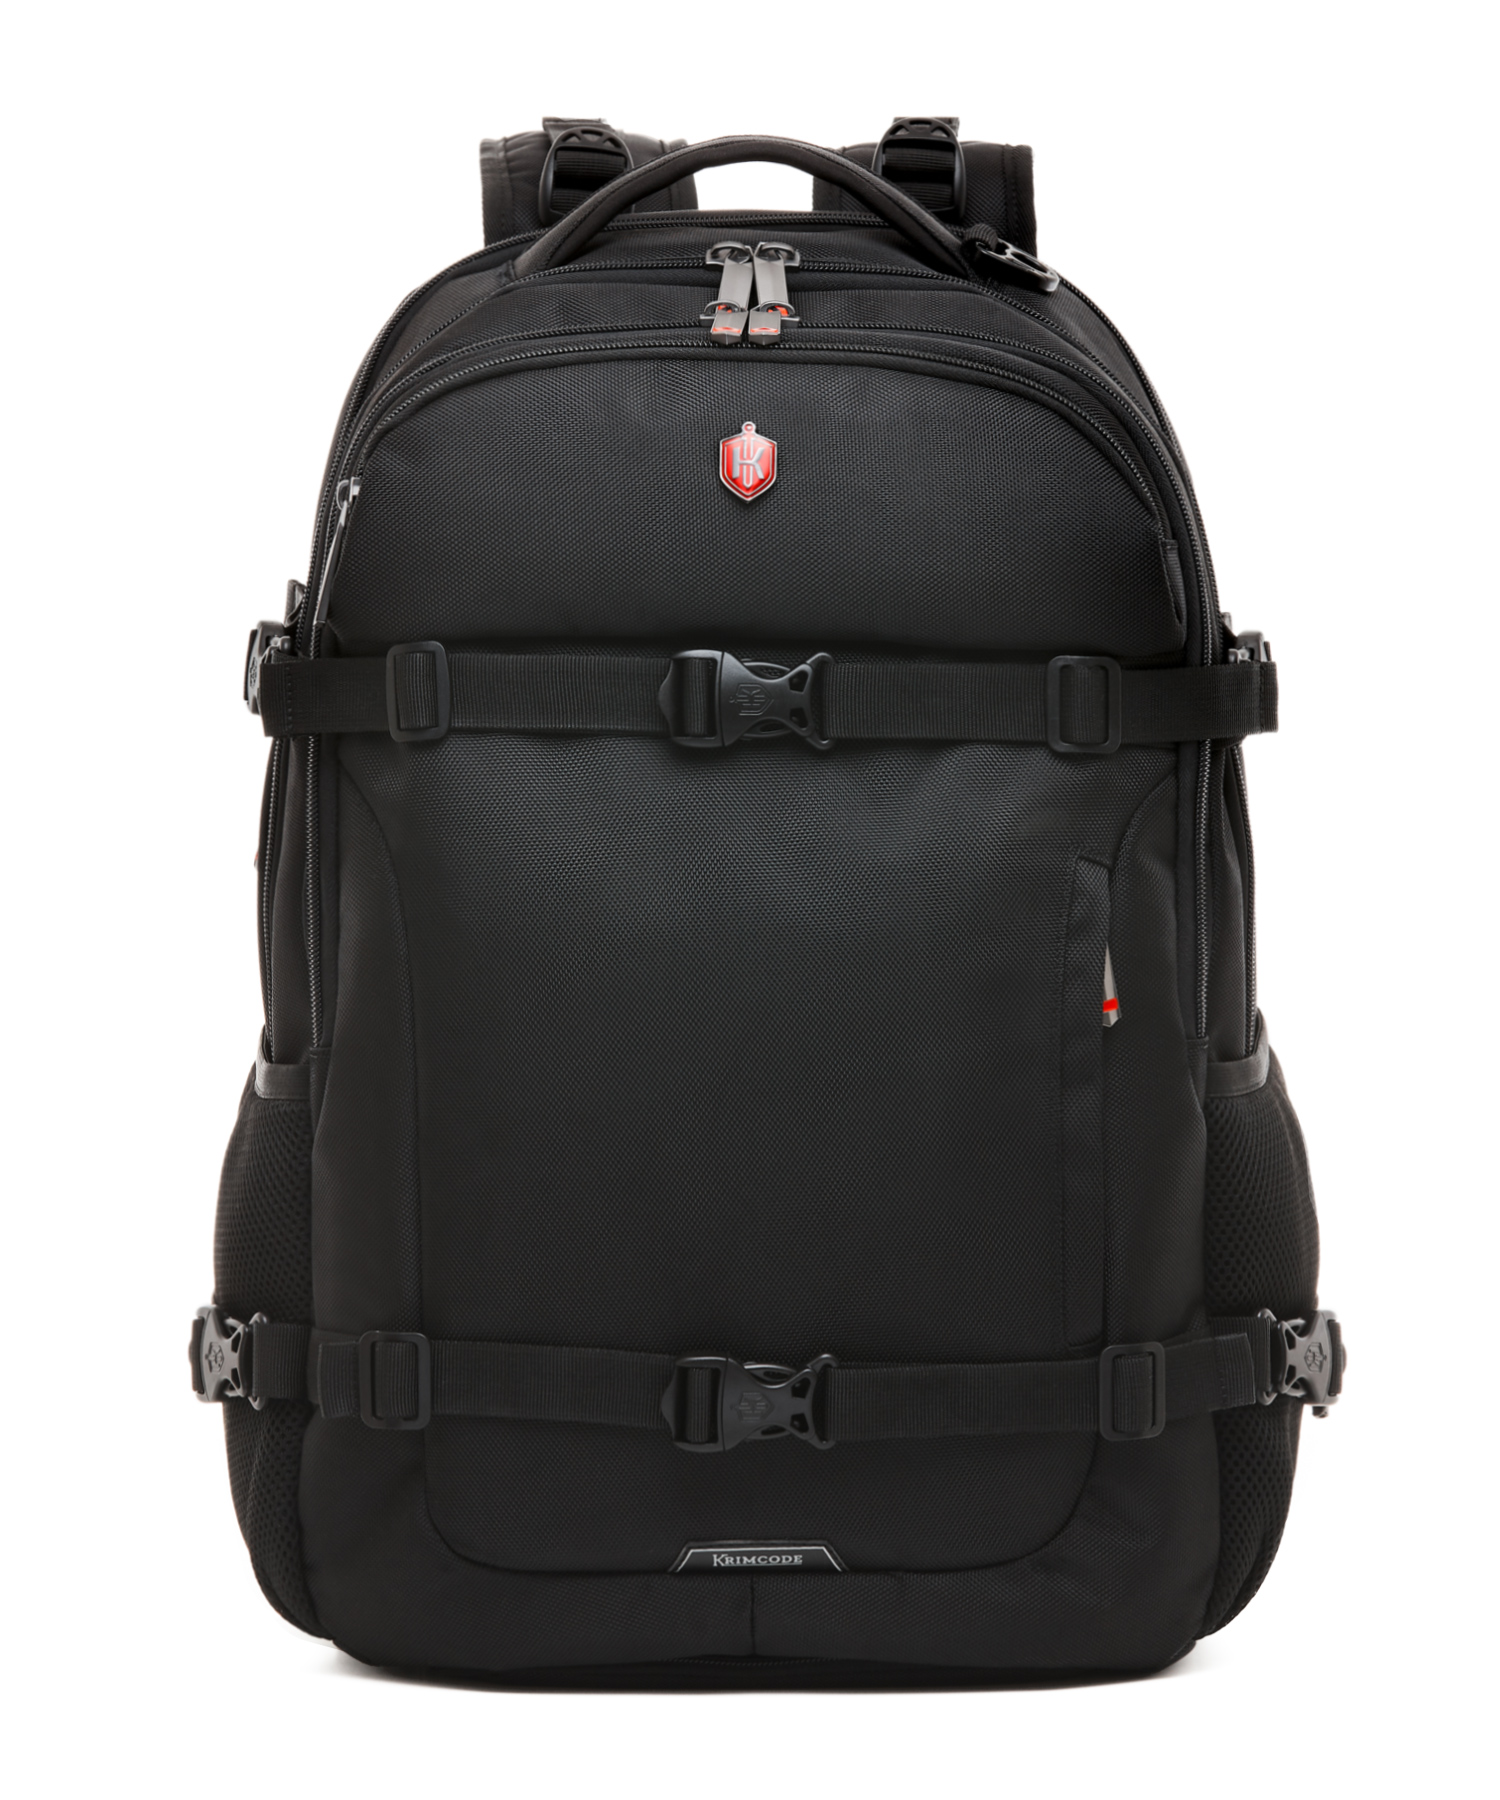 Krimcode Street Casual Notebook Backpack